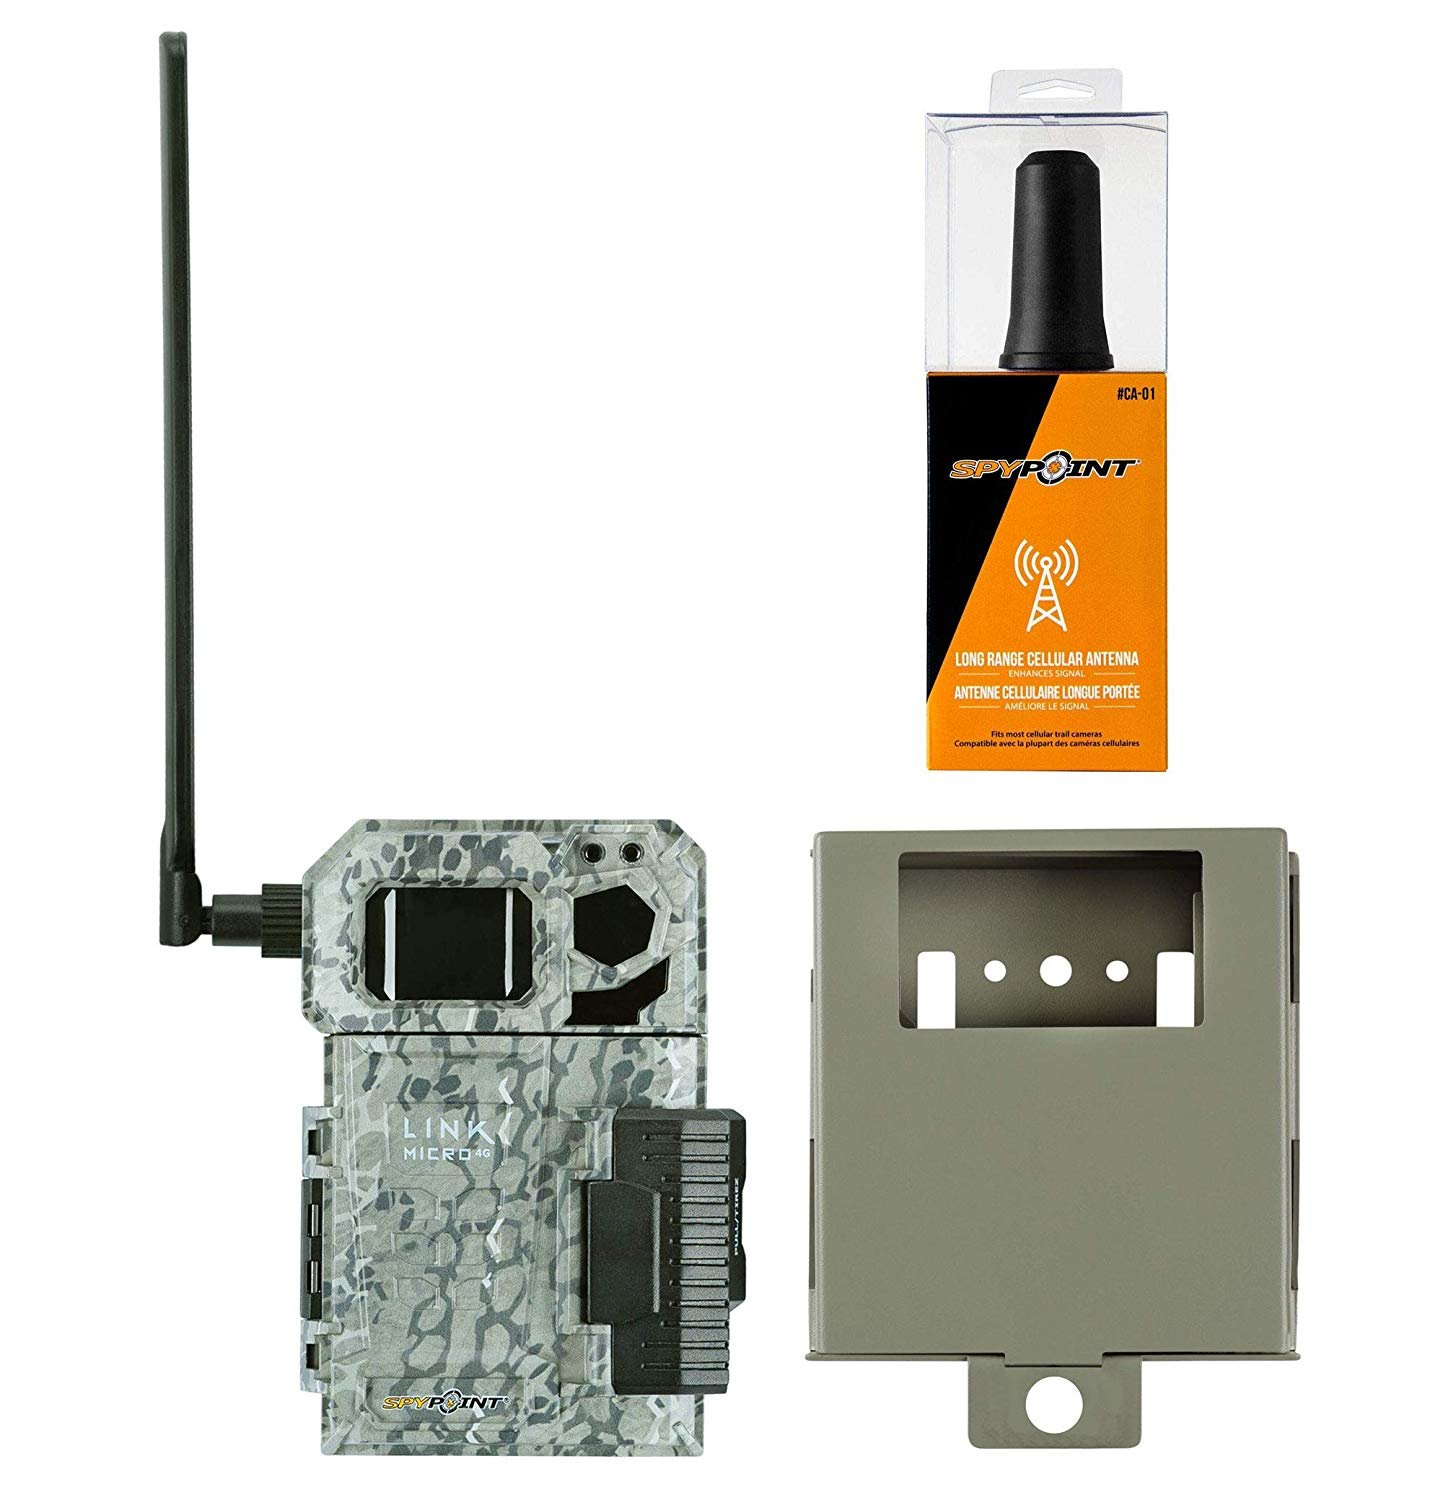 Spypoint Long Range Cellular Antenna Signal Booster #CA-01